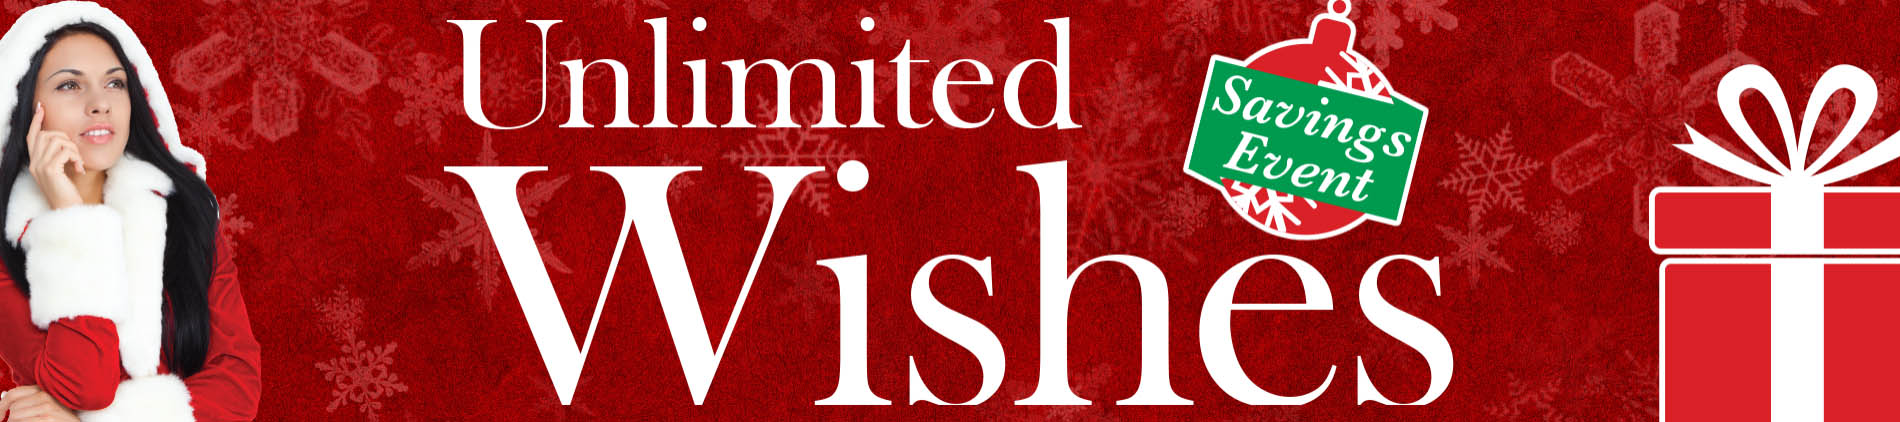 December Savings Event Unlimited Wishes at Audio Video